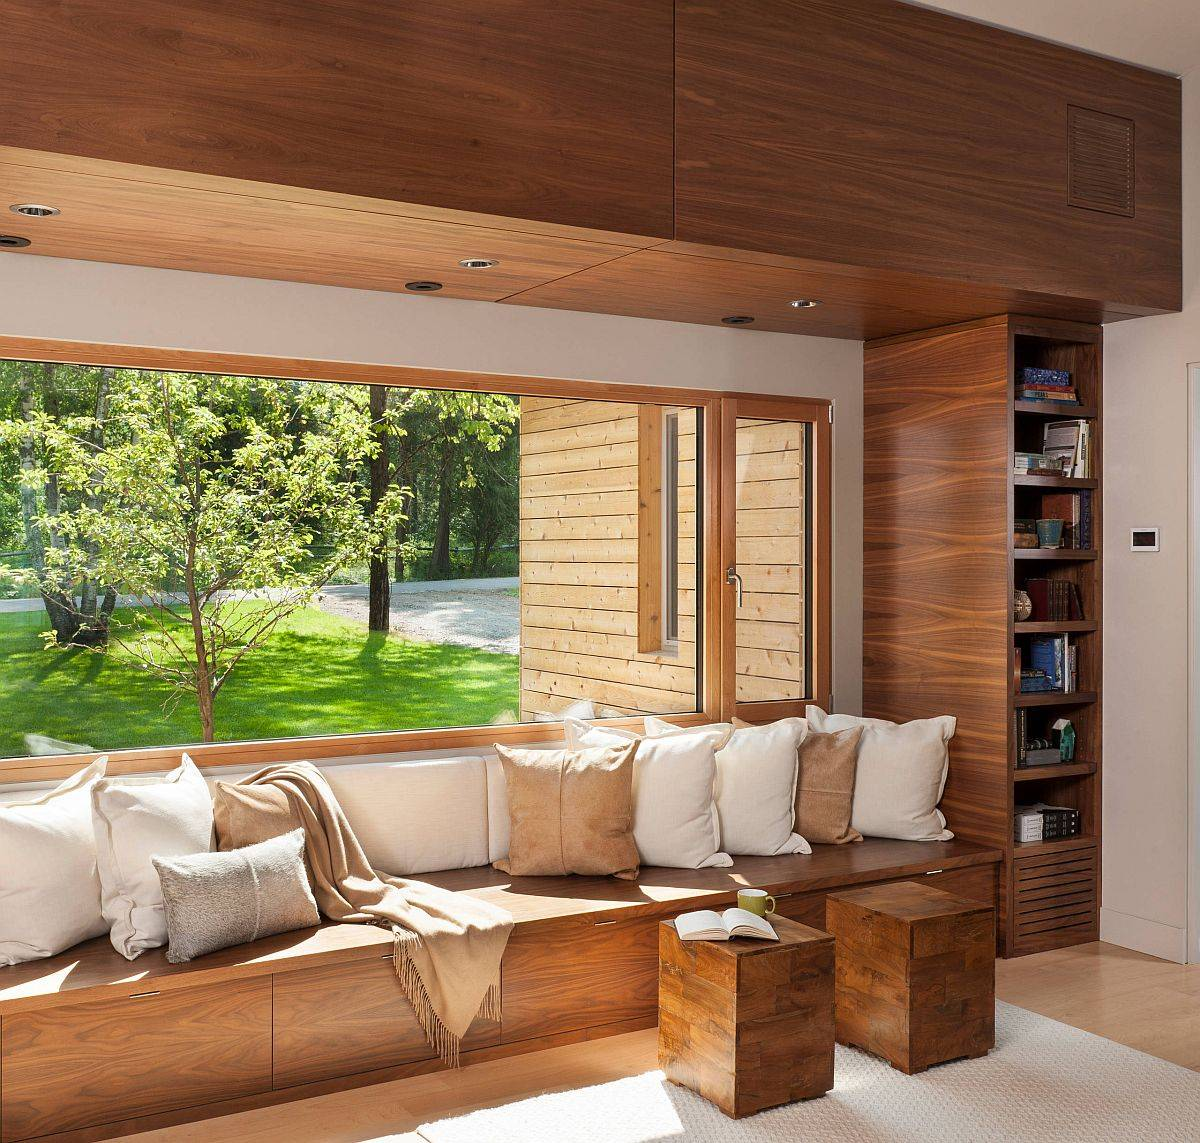 Wooden built-in benches are the most popular setaing options in the small family room